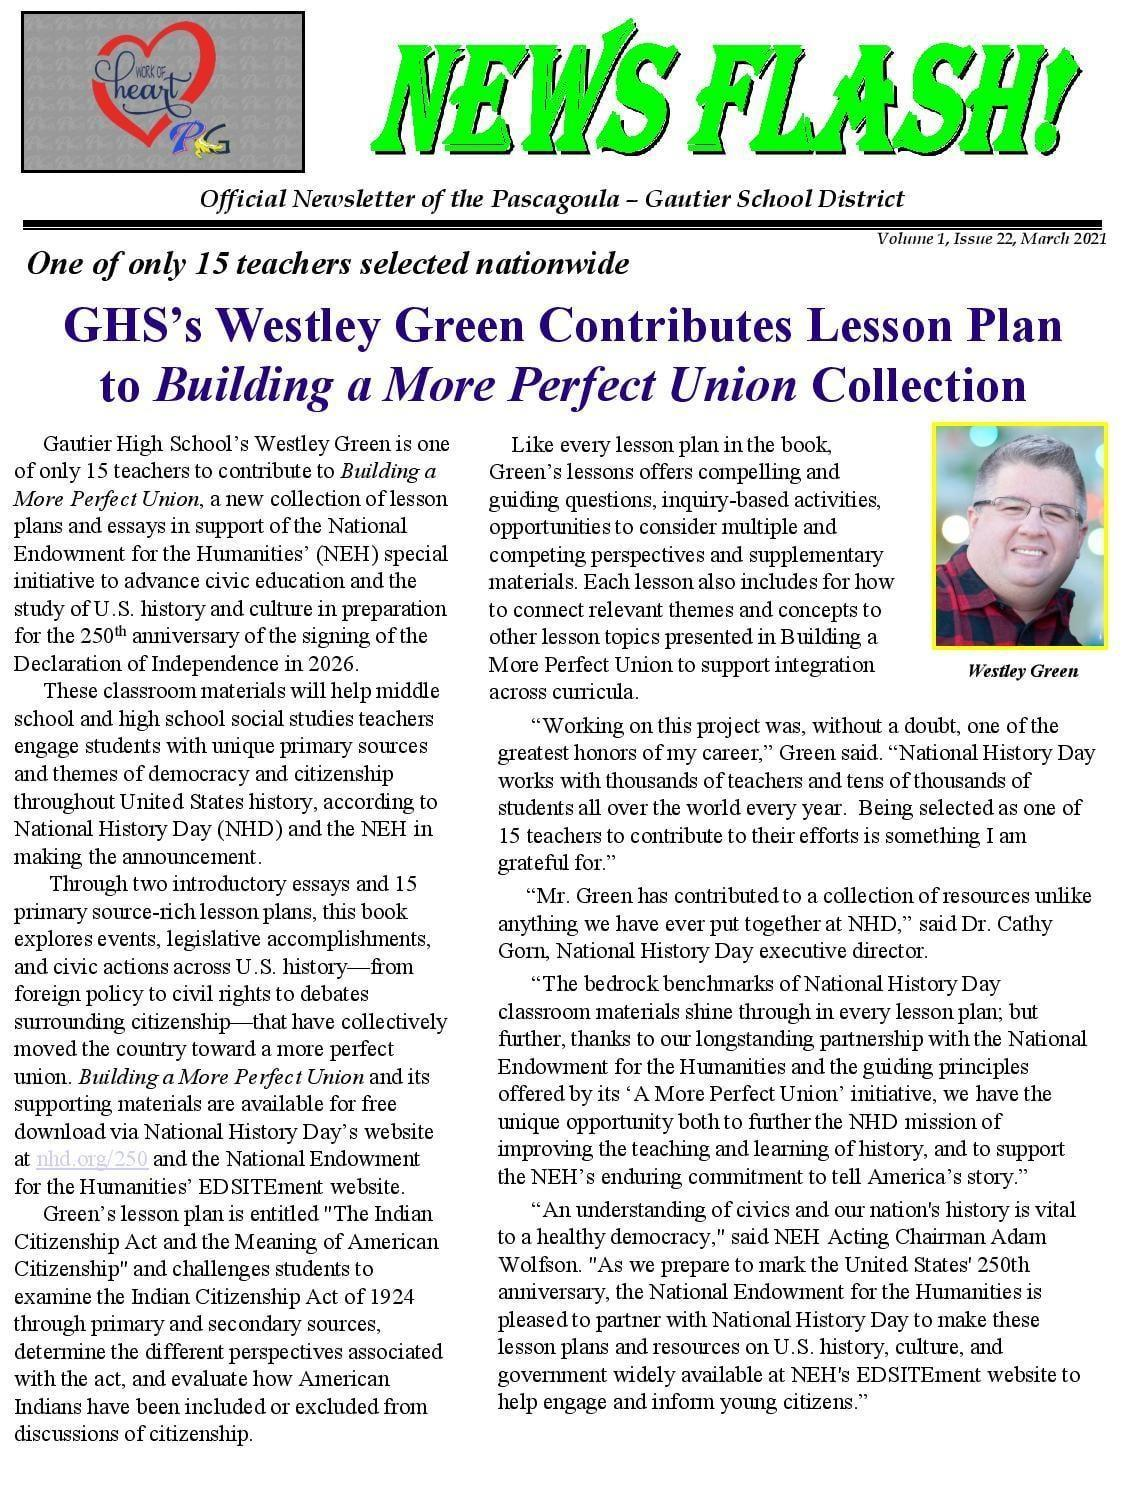 GHS Westley Green Contributes Lesson Plan to Building a More Perfect Union Collection